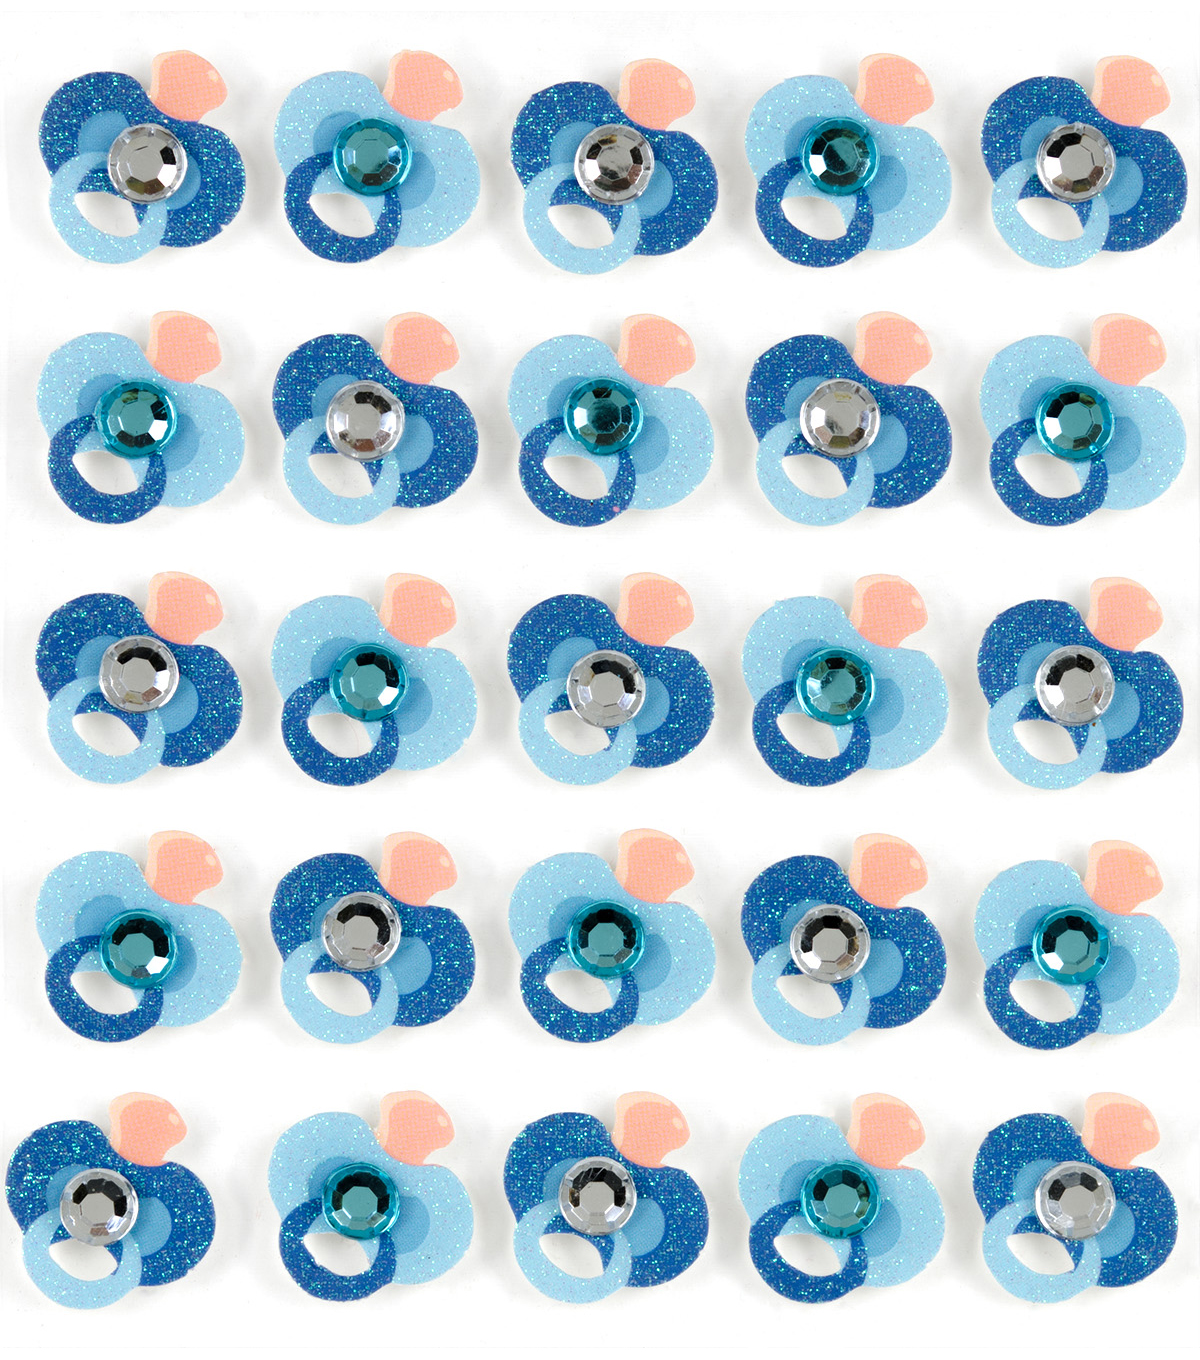 Jolee\u0027s Boutique 25 Pack Glitter Repeat Stickers-Blue Pacifier